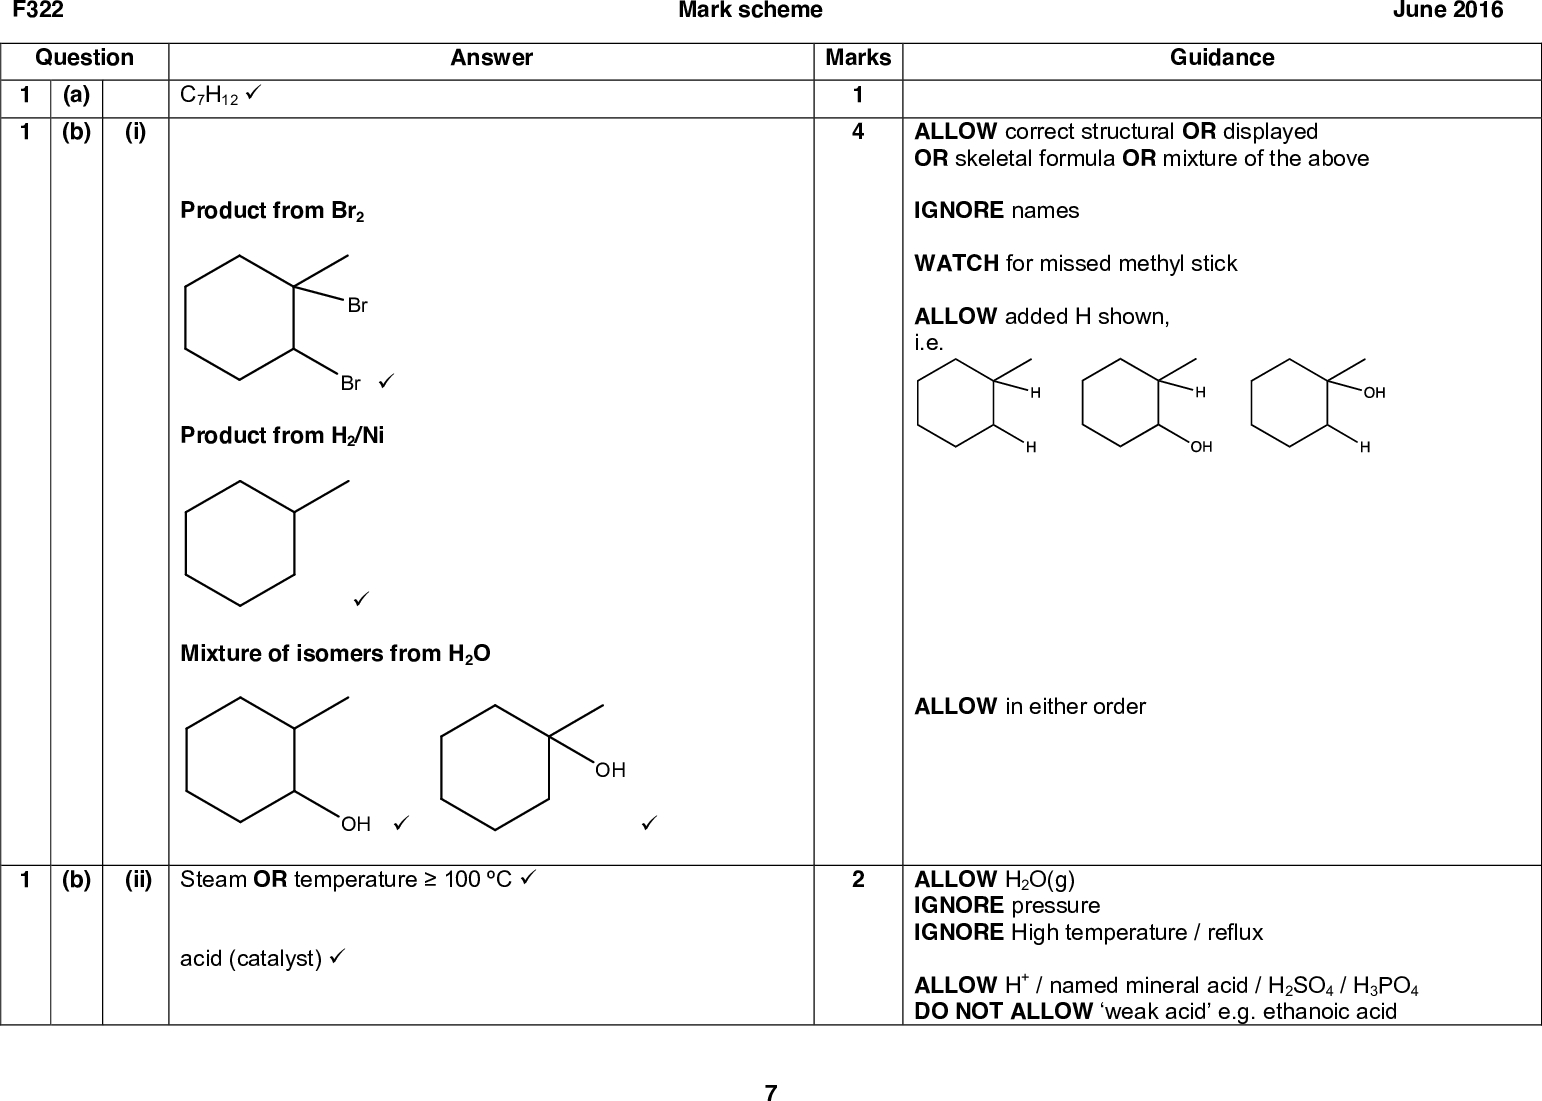 F322 Question 1 (i) 1 (a) (b) Answer C7H12 (cid:57) Product from Br2 Br Br (cid:57) Product from H2/Ni (cid:57) Mixture of isomers from H2O (b) (ii) Steam OR temperature100 C (cid:57) OH (cid:57) acid (catalyst) (cid:57) Mark scheme June 2016 Marks 1 4 Guidance ALLOW correct structural OR displayed OR skeletal formula OR mixture of the above IGNORE names WATCH for missed methyl stick ALLOW added H shown, i.e. ALLOW in either order ALLOW H2O(g) IGNORE pressure IGNORE High temperature / reflux ALLOW H+ / named mineral acid / H2SO4 / H3PO4 DO NOT ALLOW weak acid e.g. ethanoic acid OH (cid:57)<br />  Mark scheme June 2016 Marks Answer Curly arrow from double bond to Br of BrBr (cid:57) (cid:3) Correct dipole shown on BrBr AND curly arrow showing breaking of BrBr bond (cid:57) (cid:71)(cid:14) Br (cid:71)(cid:16) Br ------------------------------------------------------------------------ Correct carbocation with + charge on C AND curly arrow from Br to C+ of carbocation (cid:57) OR Br Br Br Note: + andare fine for charge (circles used for clarity) Br Guidance ANNOTATE ANSWER WITH TICKS AND CROSSES Curly arrow must start from bond and go to correct atom DO NOT ALLOW any other partial charges e.g. shown on C=C bond DO NOT ALLOW + on C of carbocation. IF C atoms are displayed IGNORE missing bonds to H atoms Curly arrow must come from a lone pair on Br OR from the negative sign of Br ion (then lone pair on Br ion does not need to be shown) F322 Question 1 (iii) (b) (b) (iv) electrophilic addition (cid:57) 1 11 Total<br />